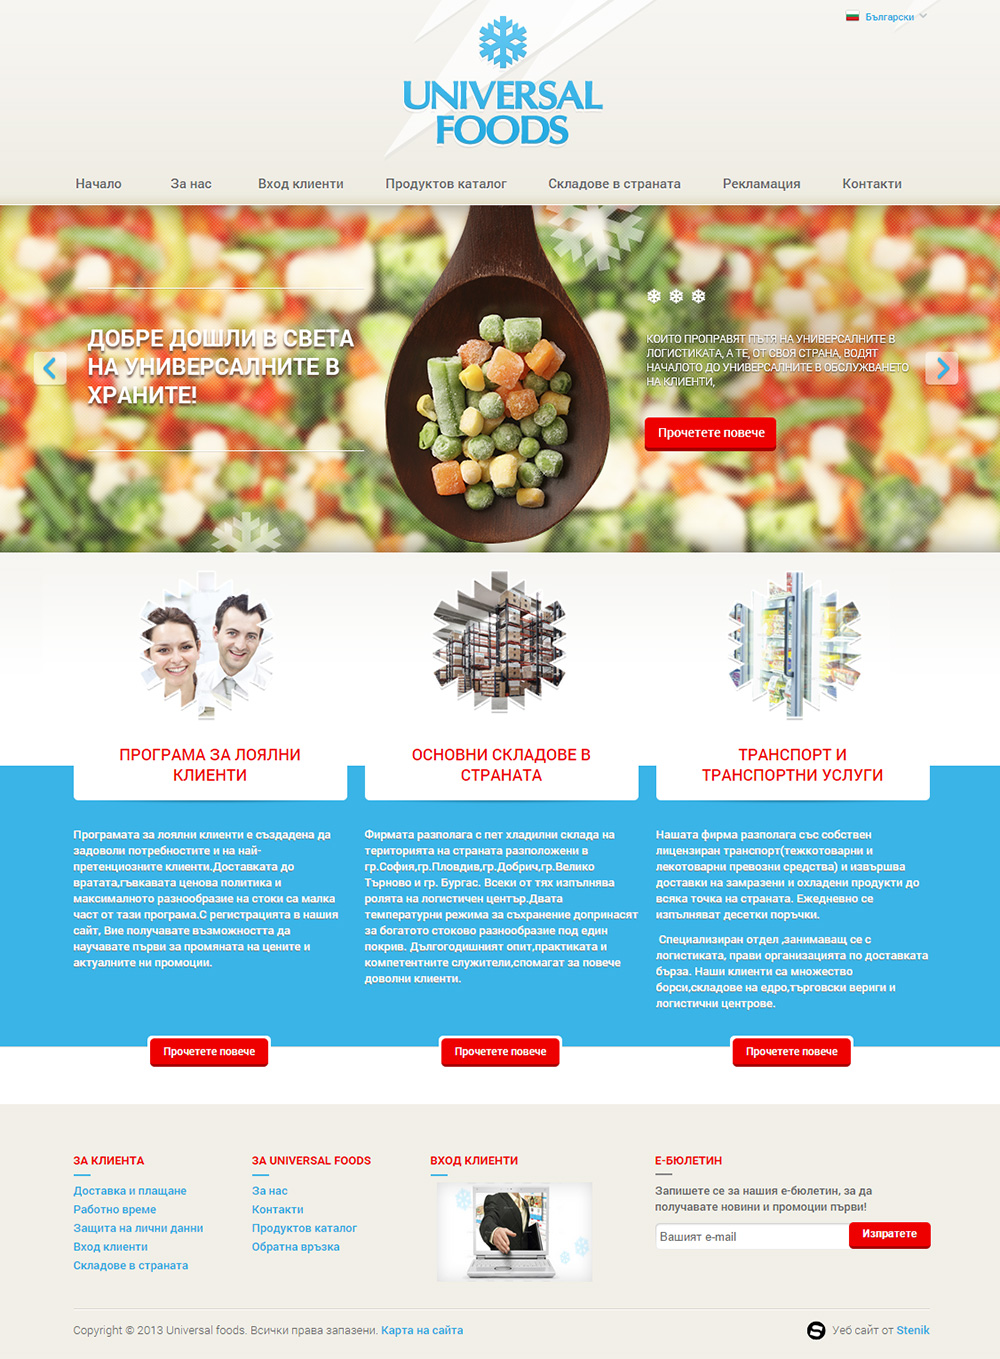 Corporate website for Universal Foods, Universal Foods - Web Sites, Stenik, StenikCMS